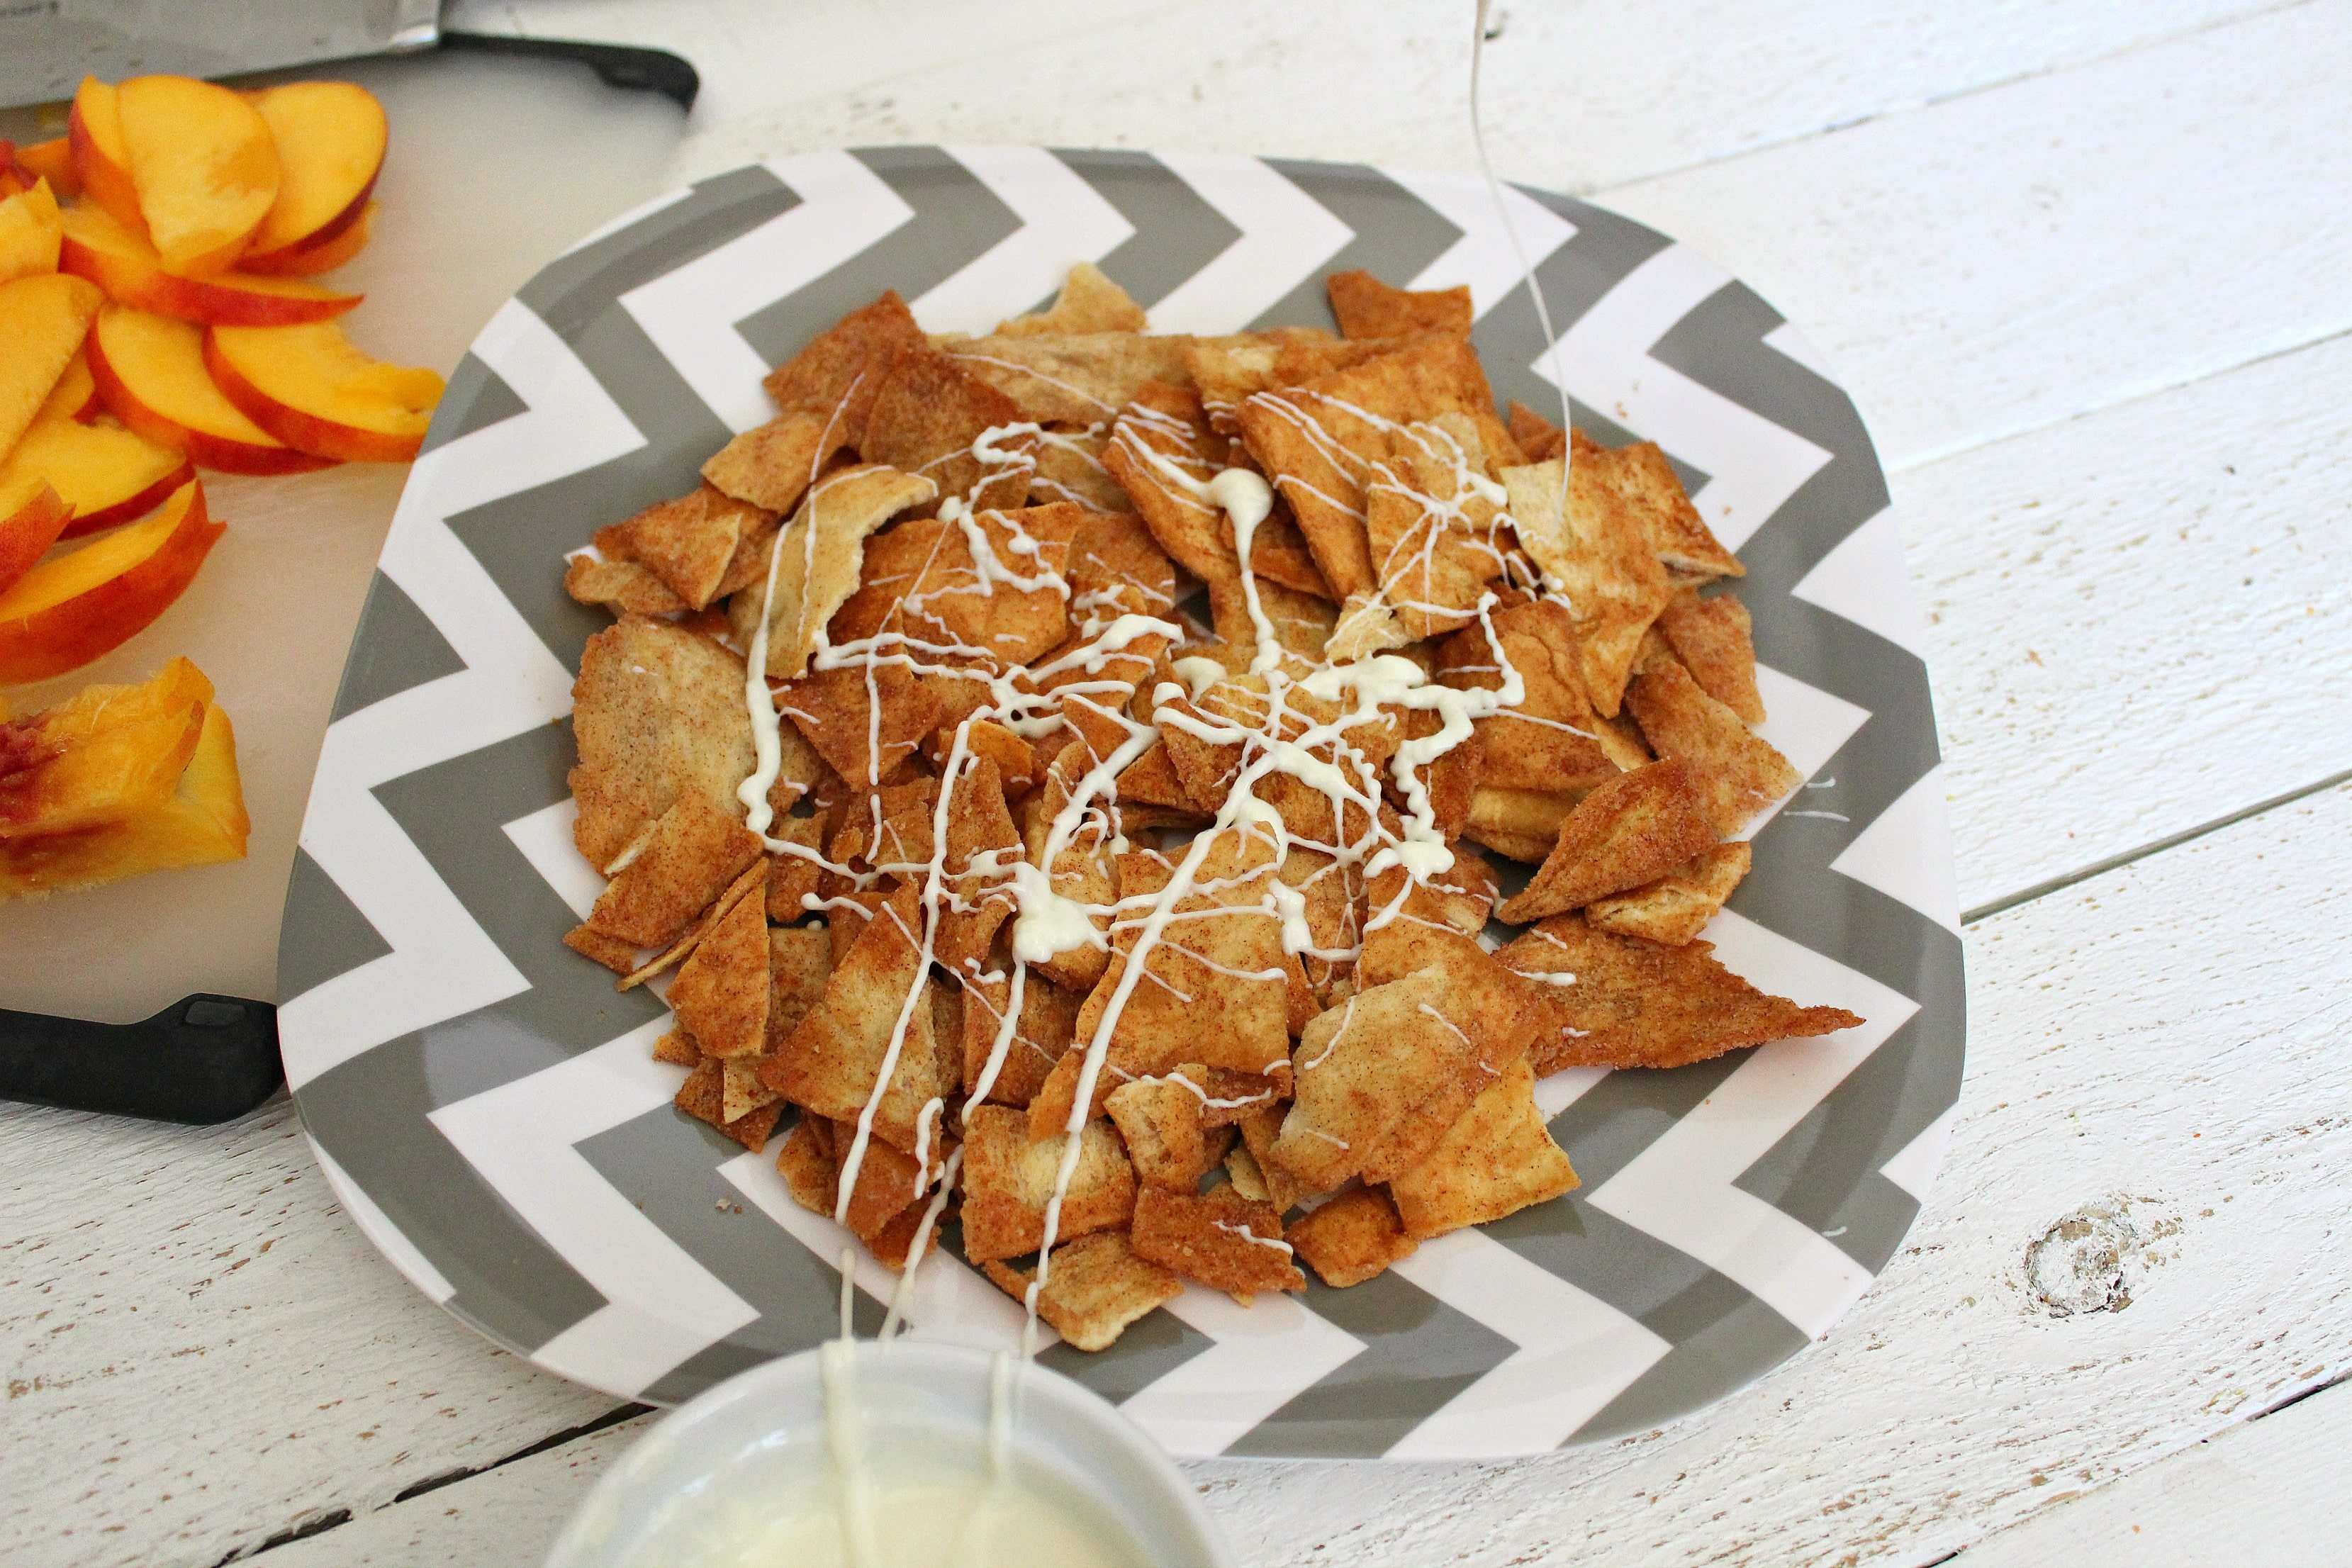 Drizzle melted white chocolate over cinnamon pita chips.